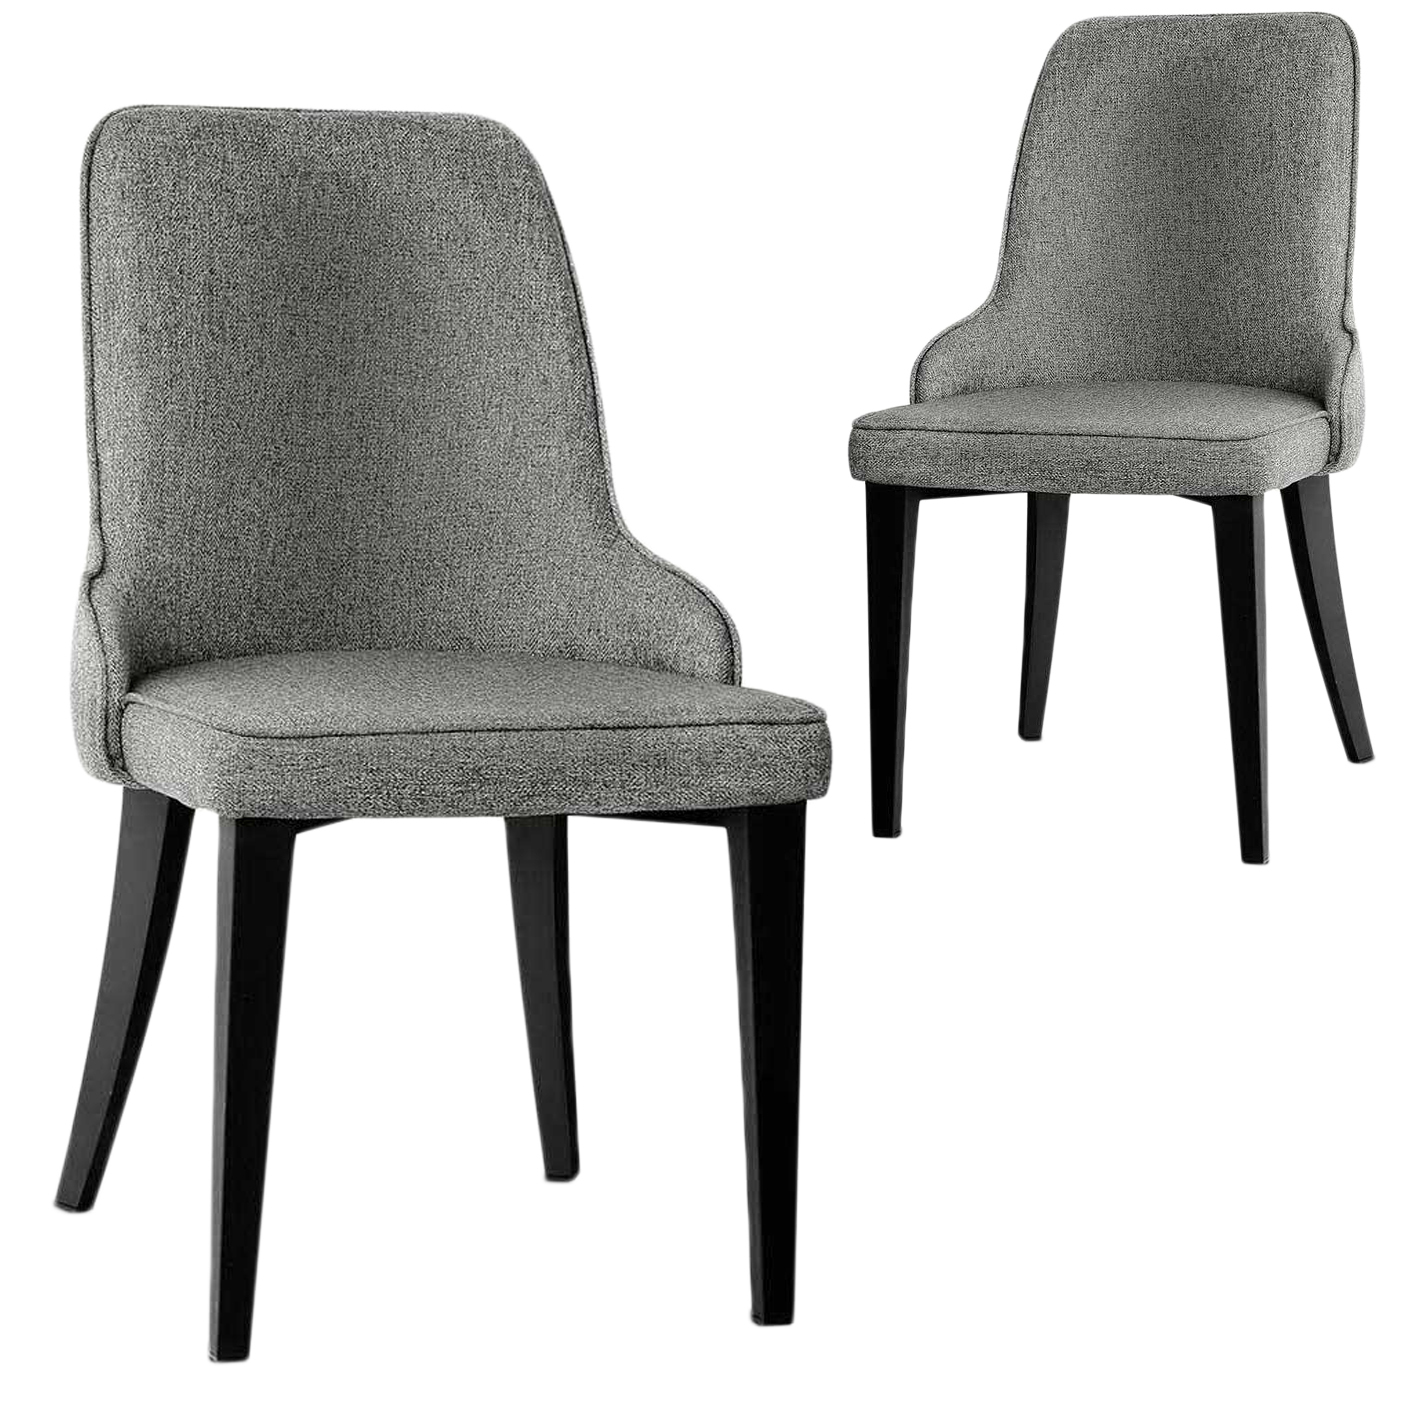 Sku ilif4652 arnault fabric dining chairs is also sometimes listed under the following manufacturer numbers ba tw v17 din5901 gyx2